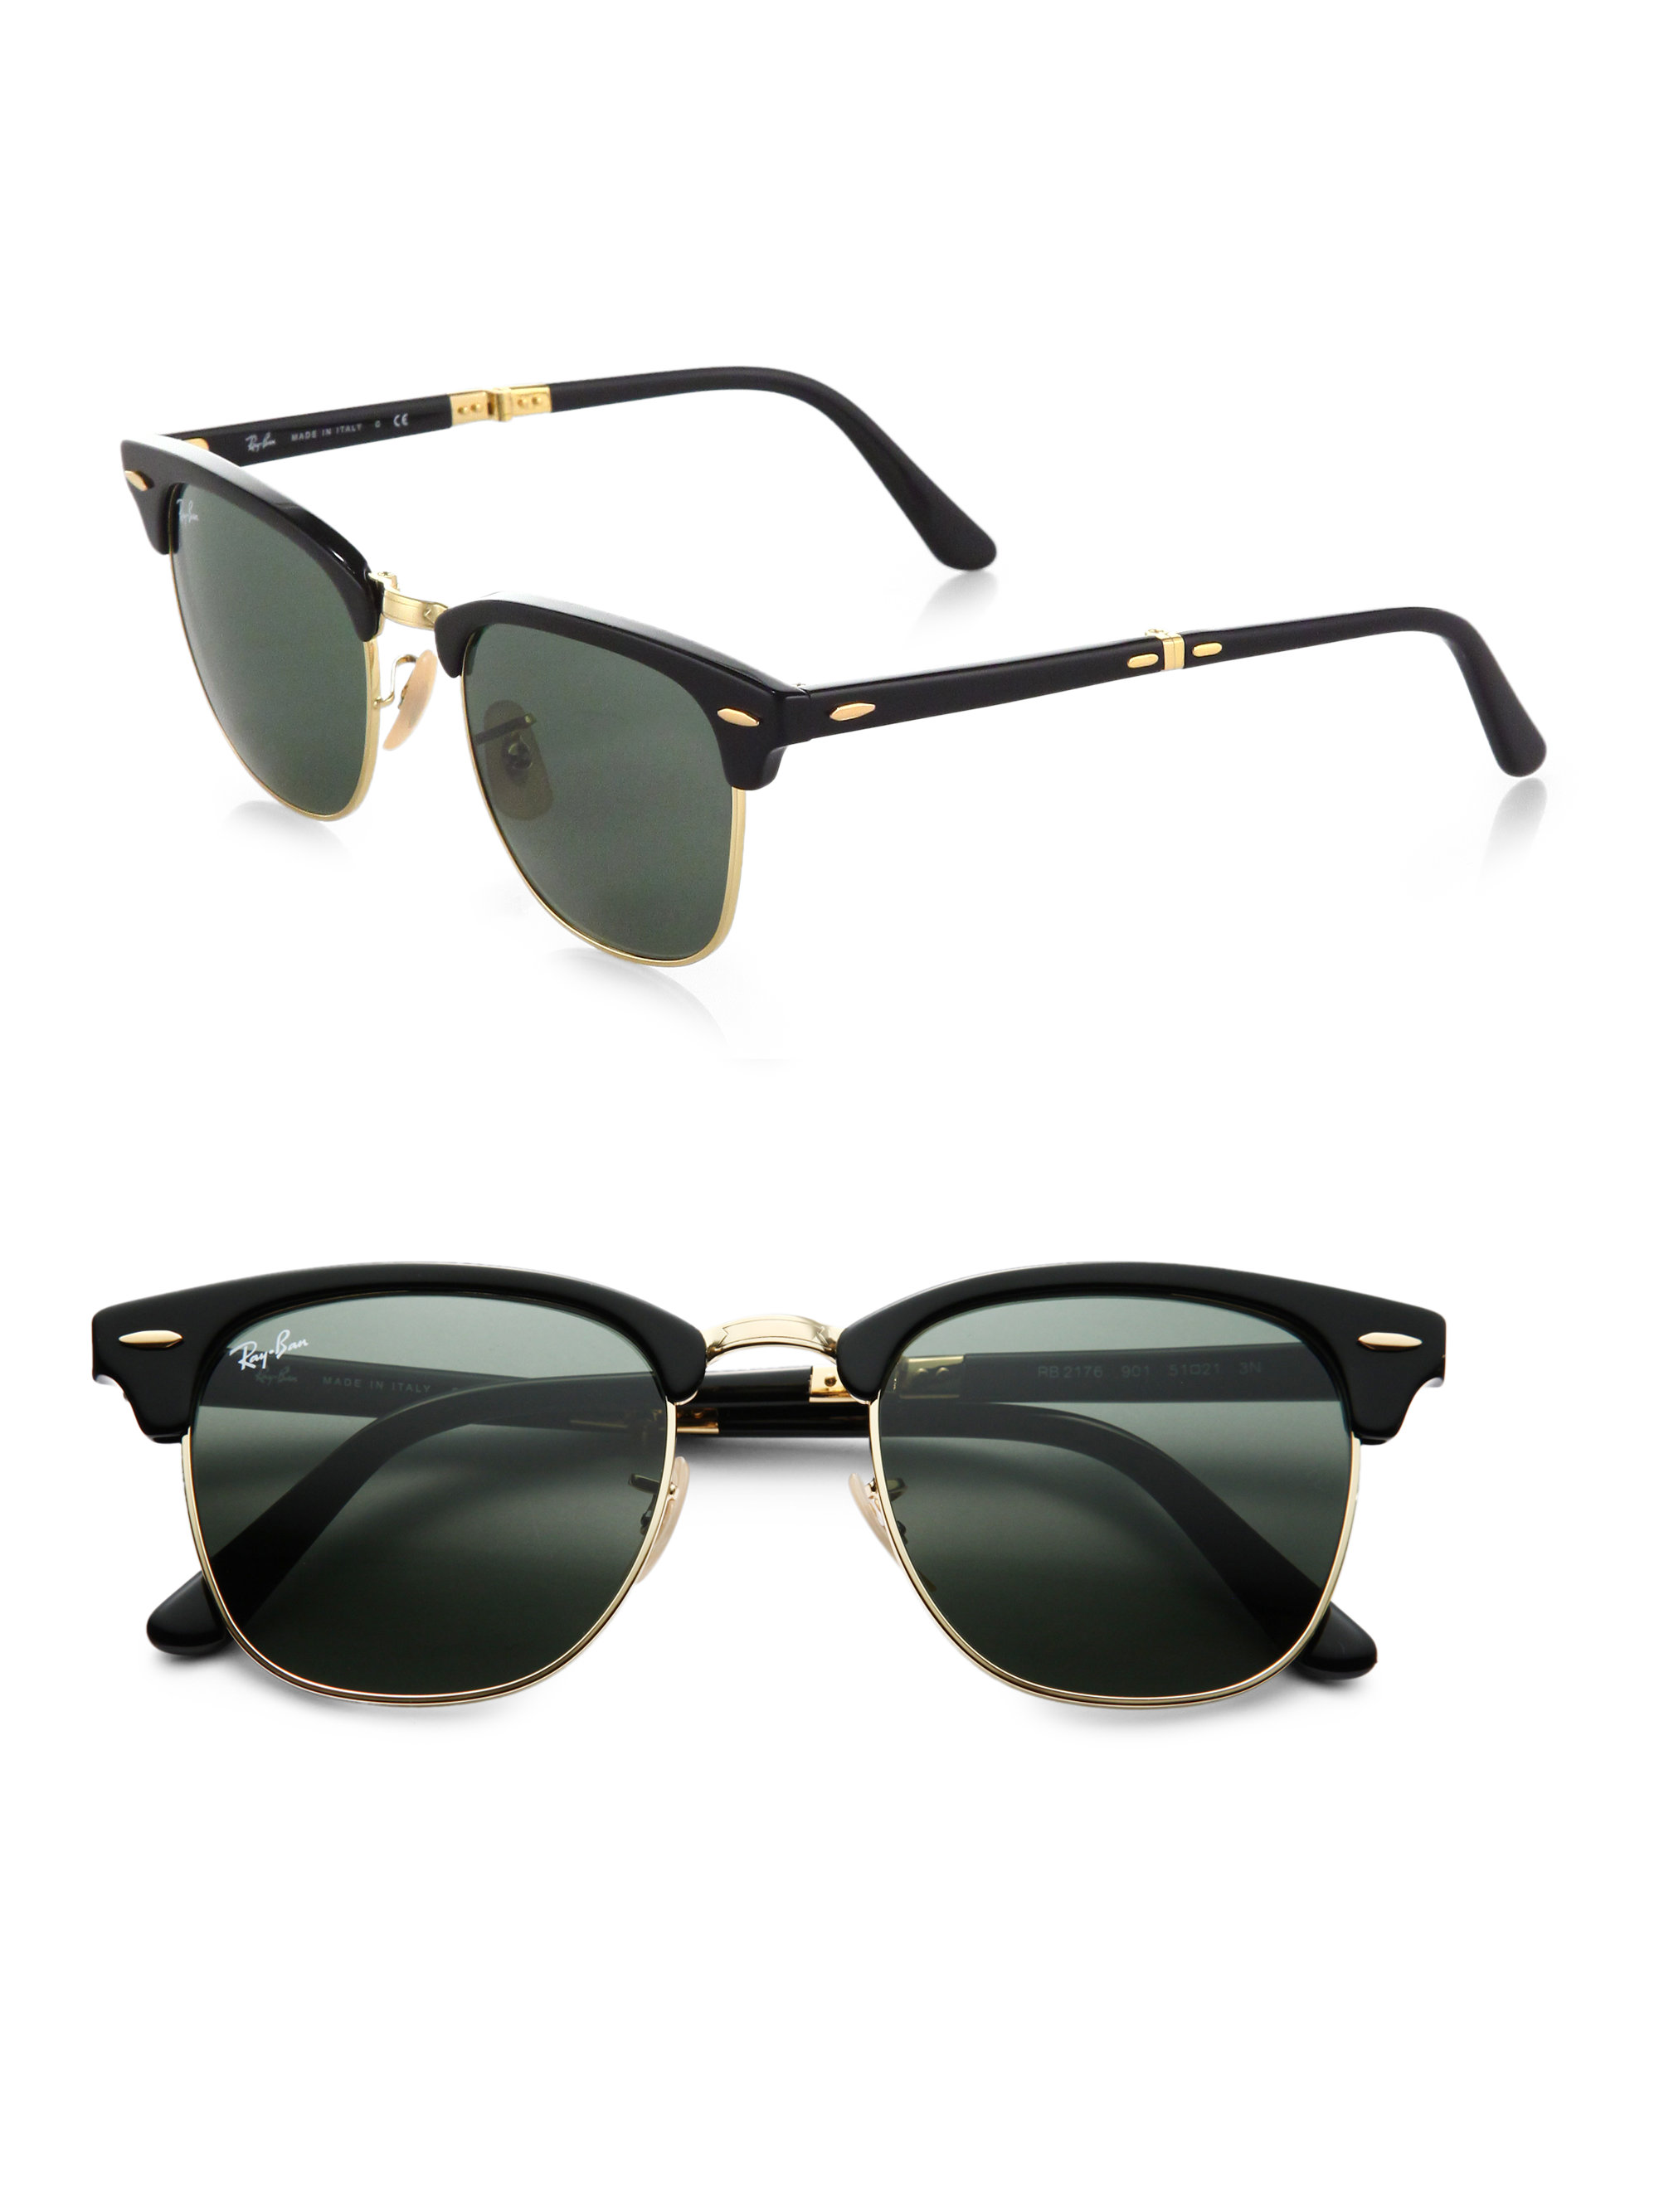 ray ban foldable clubmaster sunglasses  gallery. previously sold at: saks fifth avenue · women's clubmaster sunglasses women's ray ban clubmaster